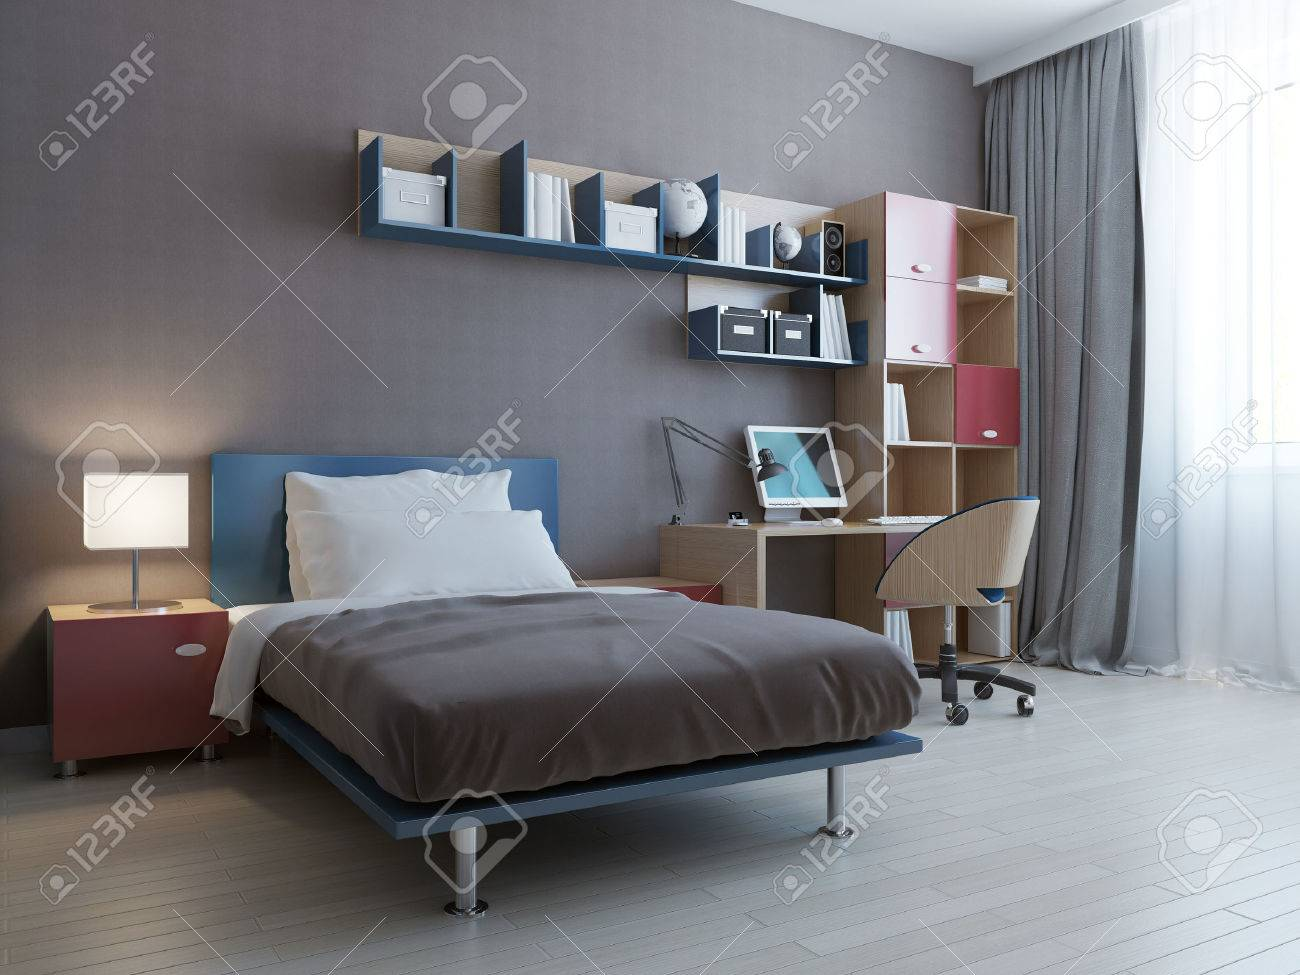 Gut Minimalist Wall System In Modern Bedroom. 3D Render Stock Photo   46424982